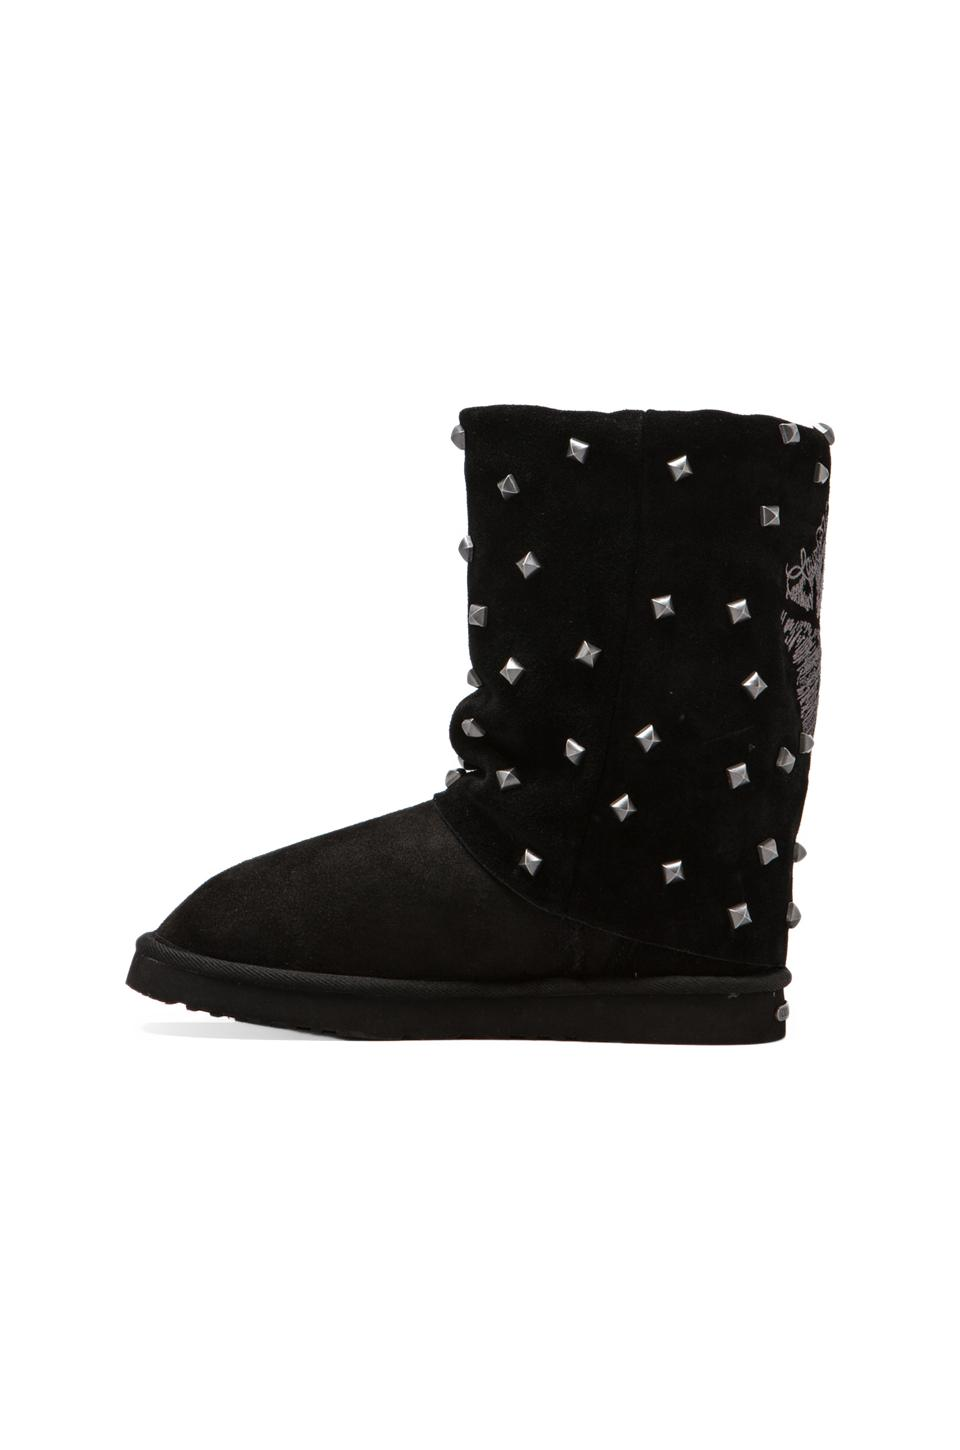 Koolaburra x Lauren Moshi Lips Boot with Twinface Sheepskin in Black | REVOLVE